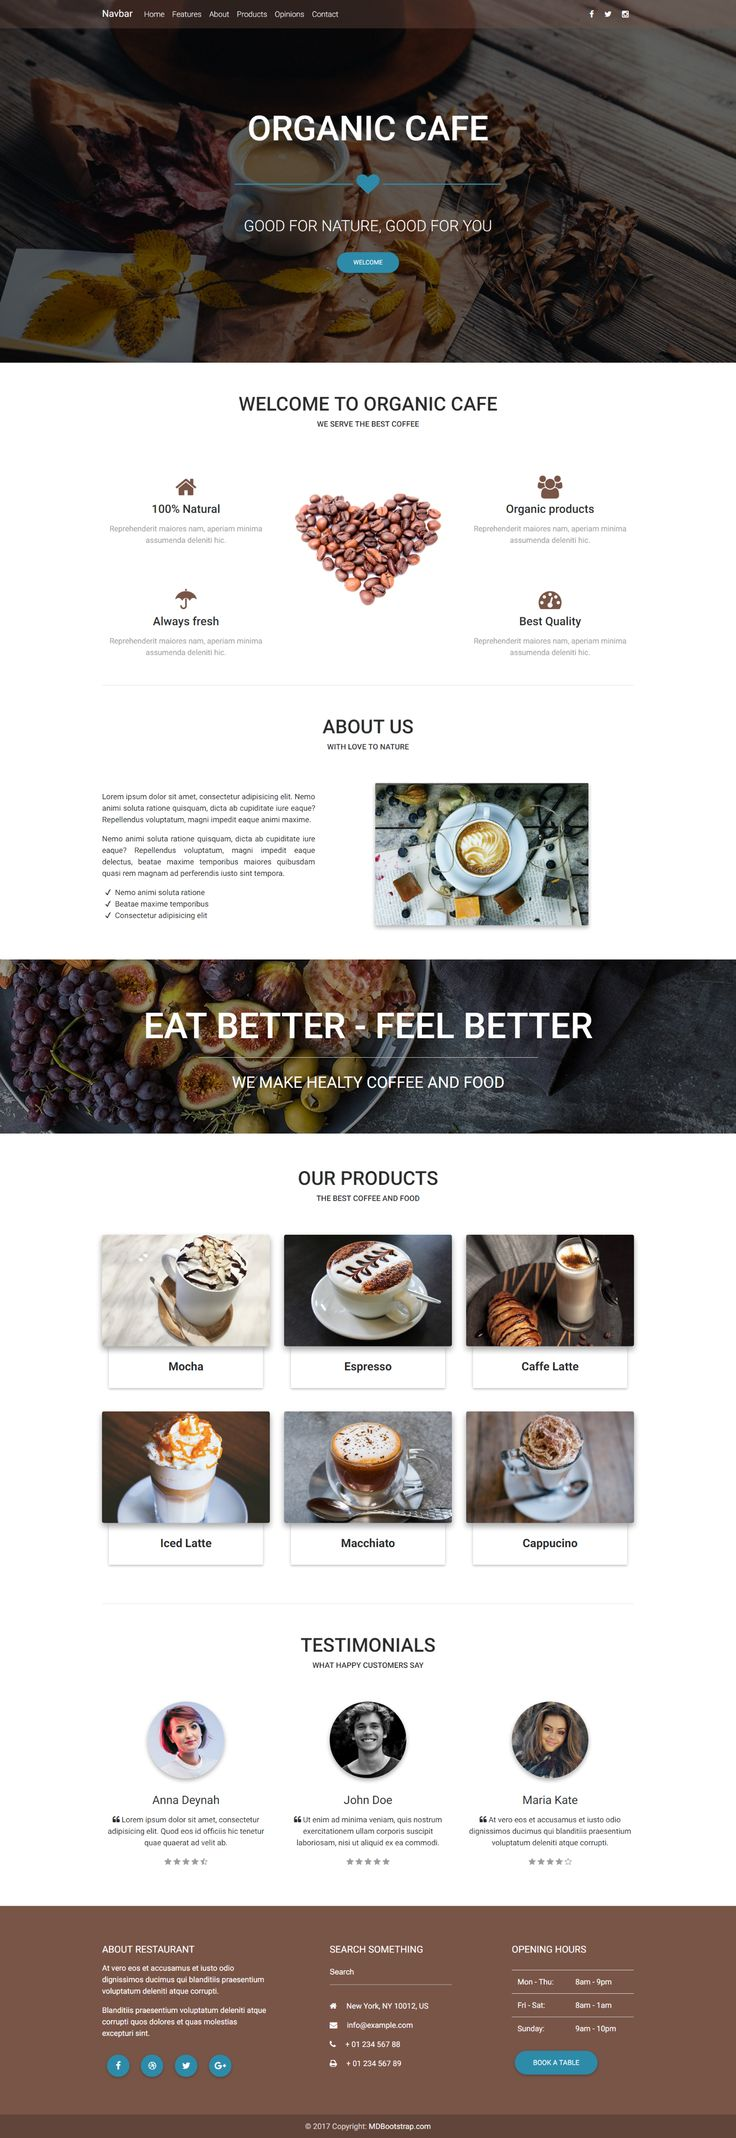 A presentation of Cafe Landing Page made with Material Design